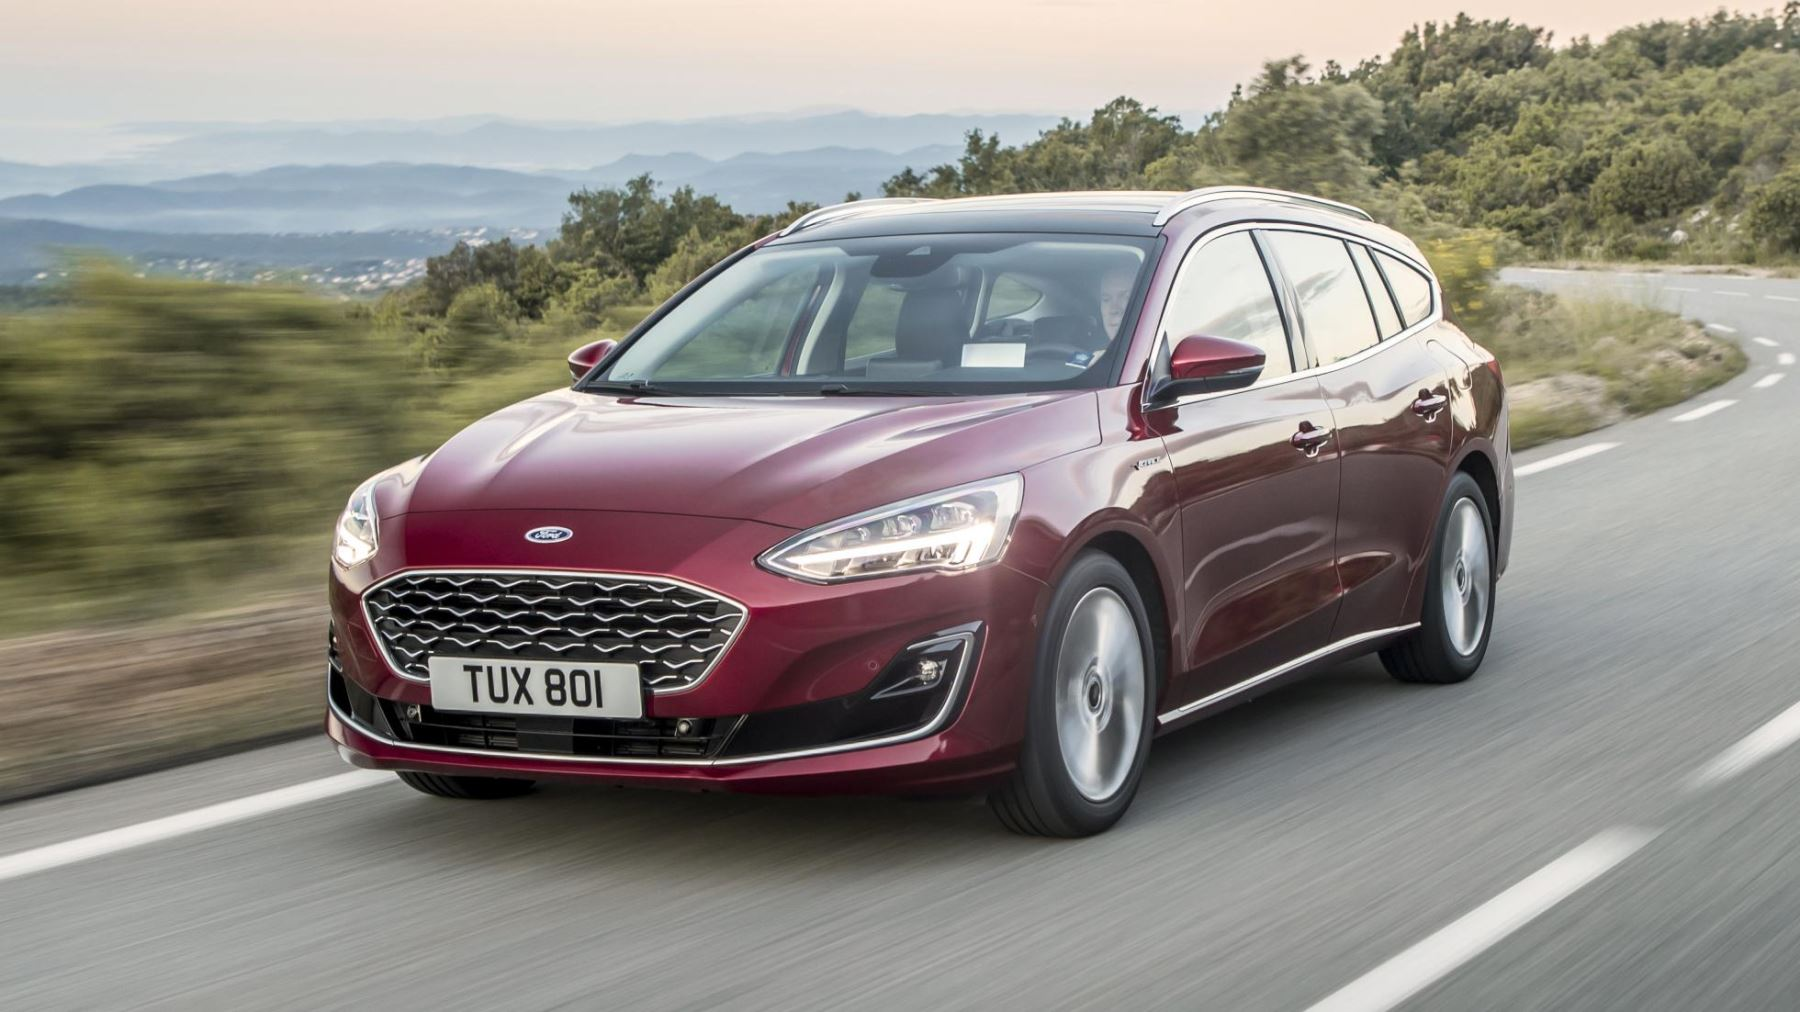 Ford Focus Active X 1.5 Diesel 120ps Diesel 5 door Estate (2019)